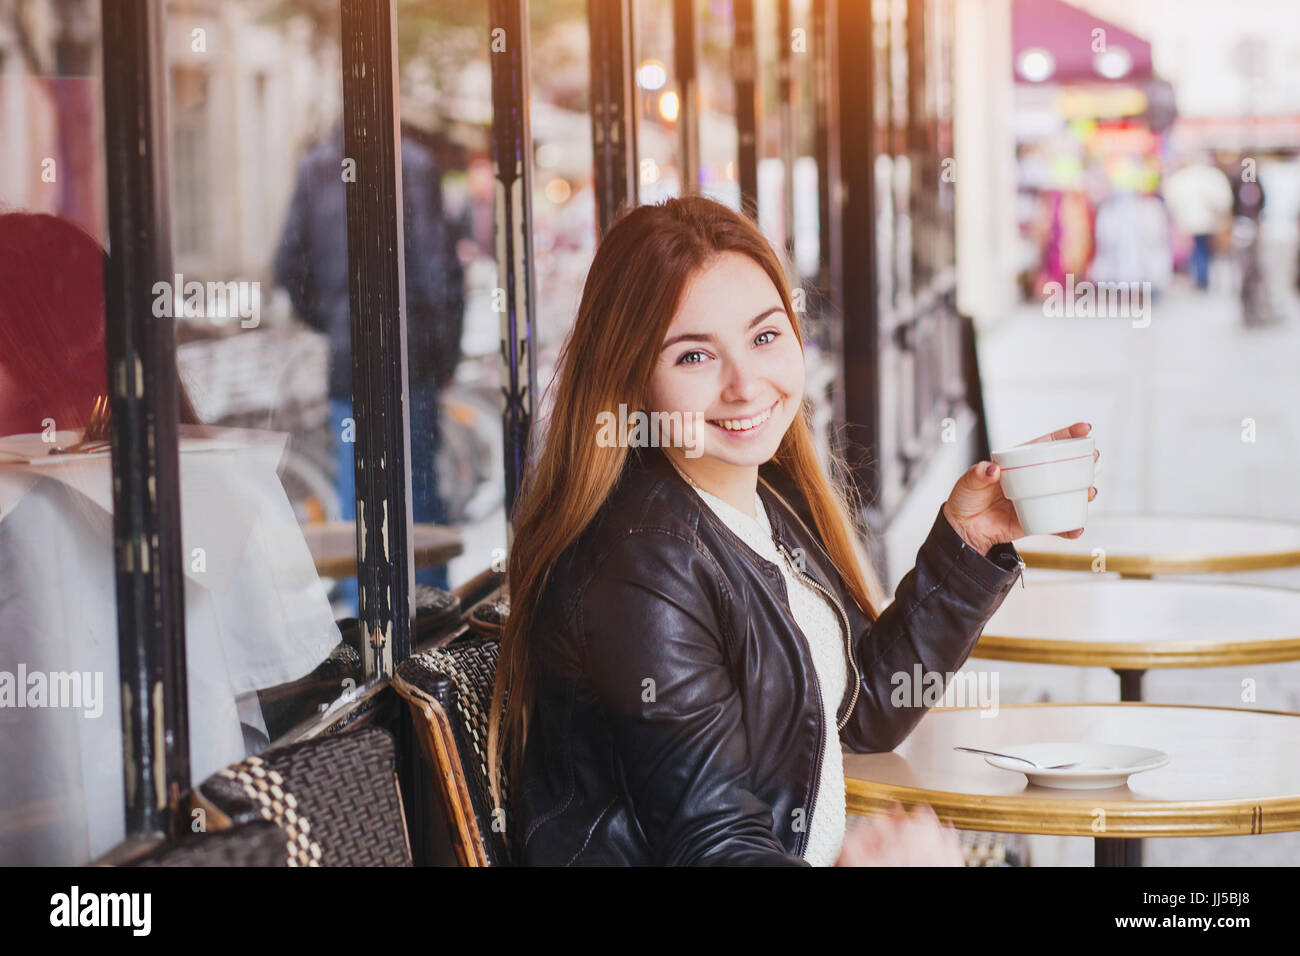 happy smiling woman drinking coffee in street cafe and looking at camera, good mood - Stock Image